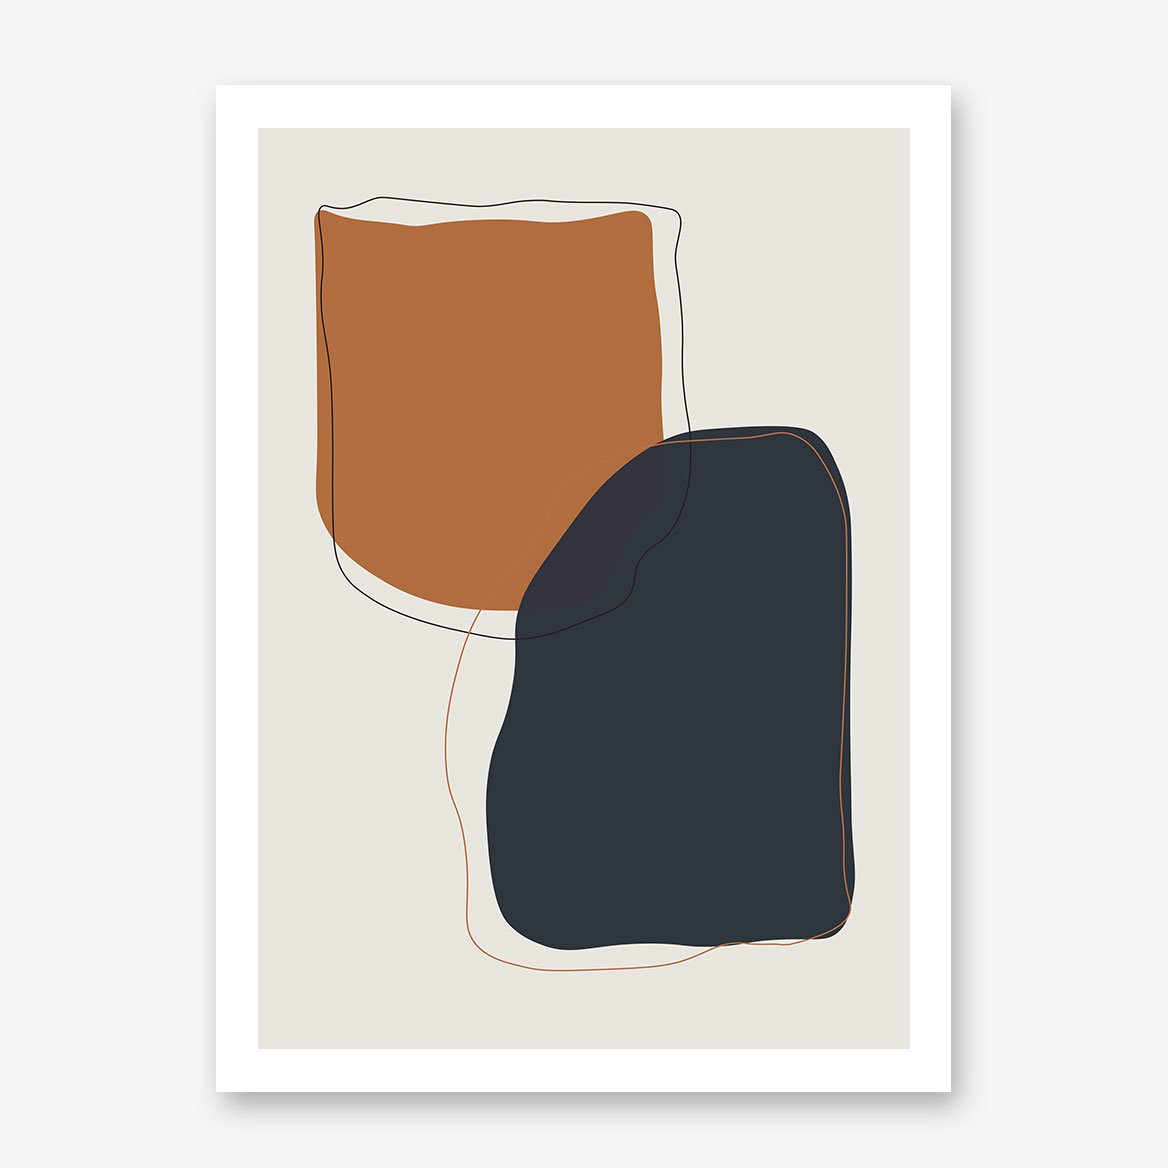 Abstract poster print with earthy coloured shapes on grey background